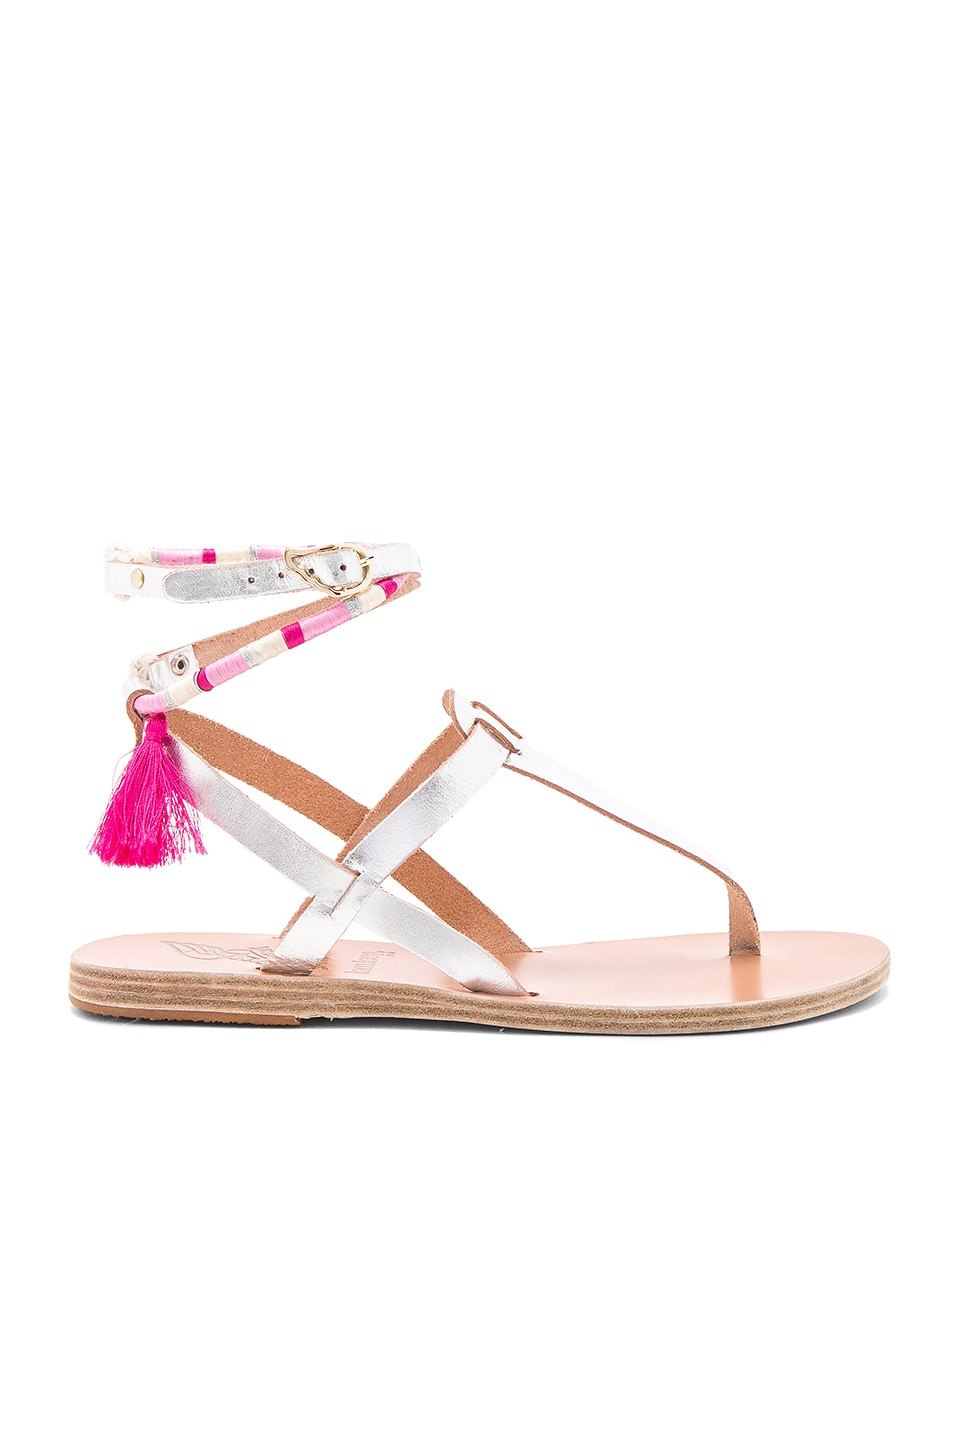 x lemlem Estia Wrap Sandal by Ancient Greek Sandals